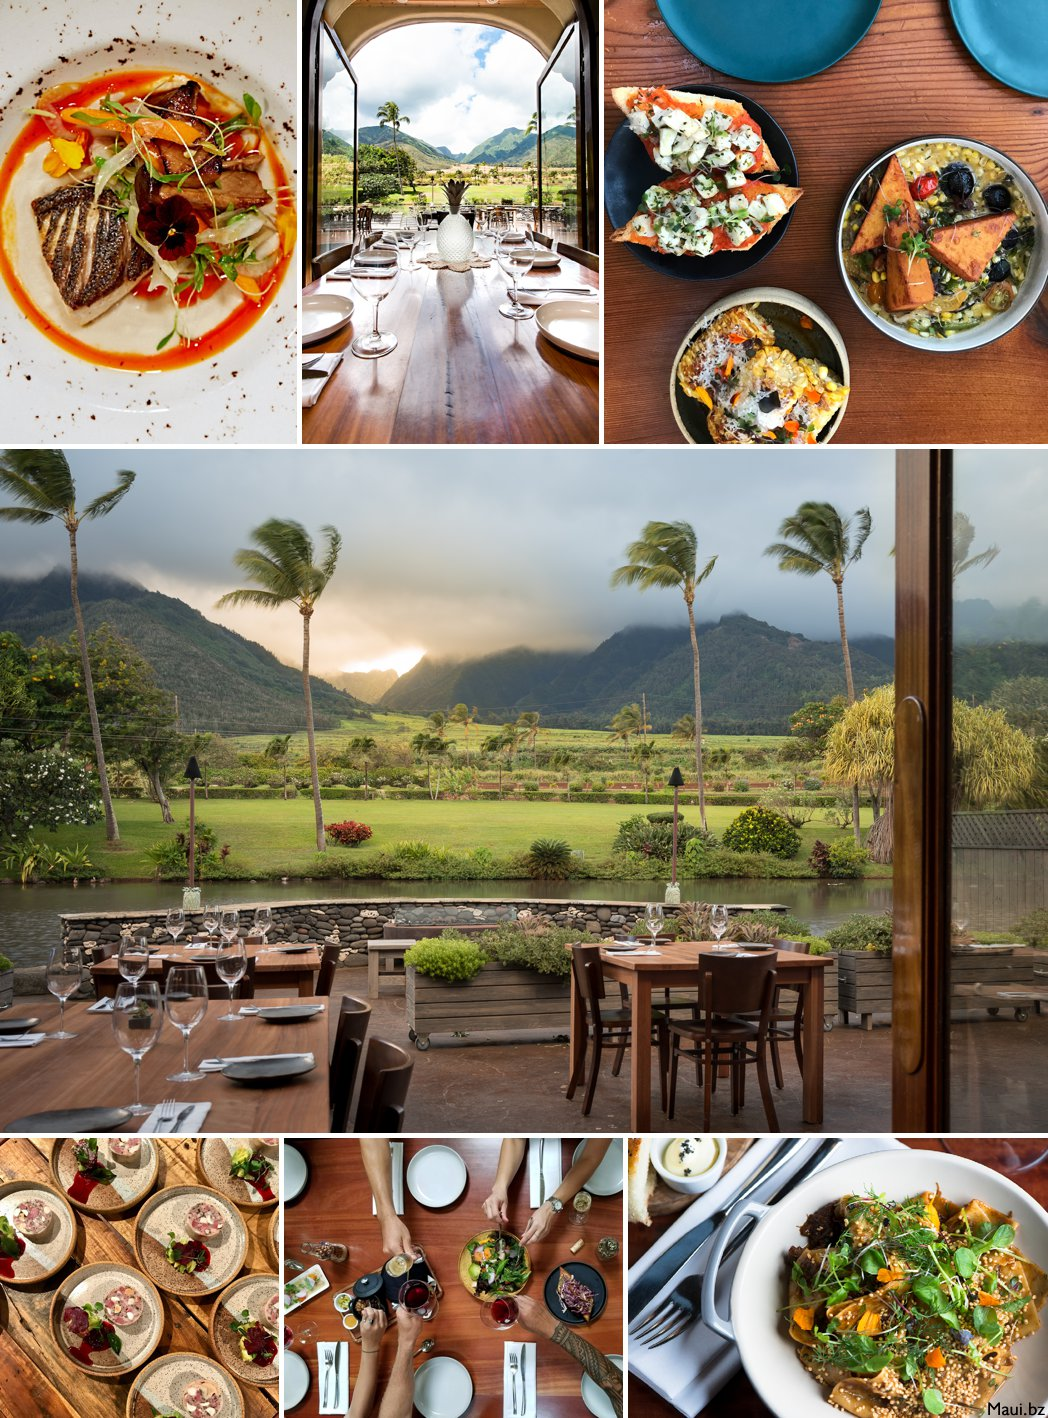 Maui Restaurants Reviews Of Restaurants In Maui Hawaii